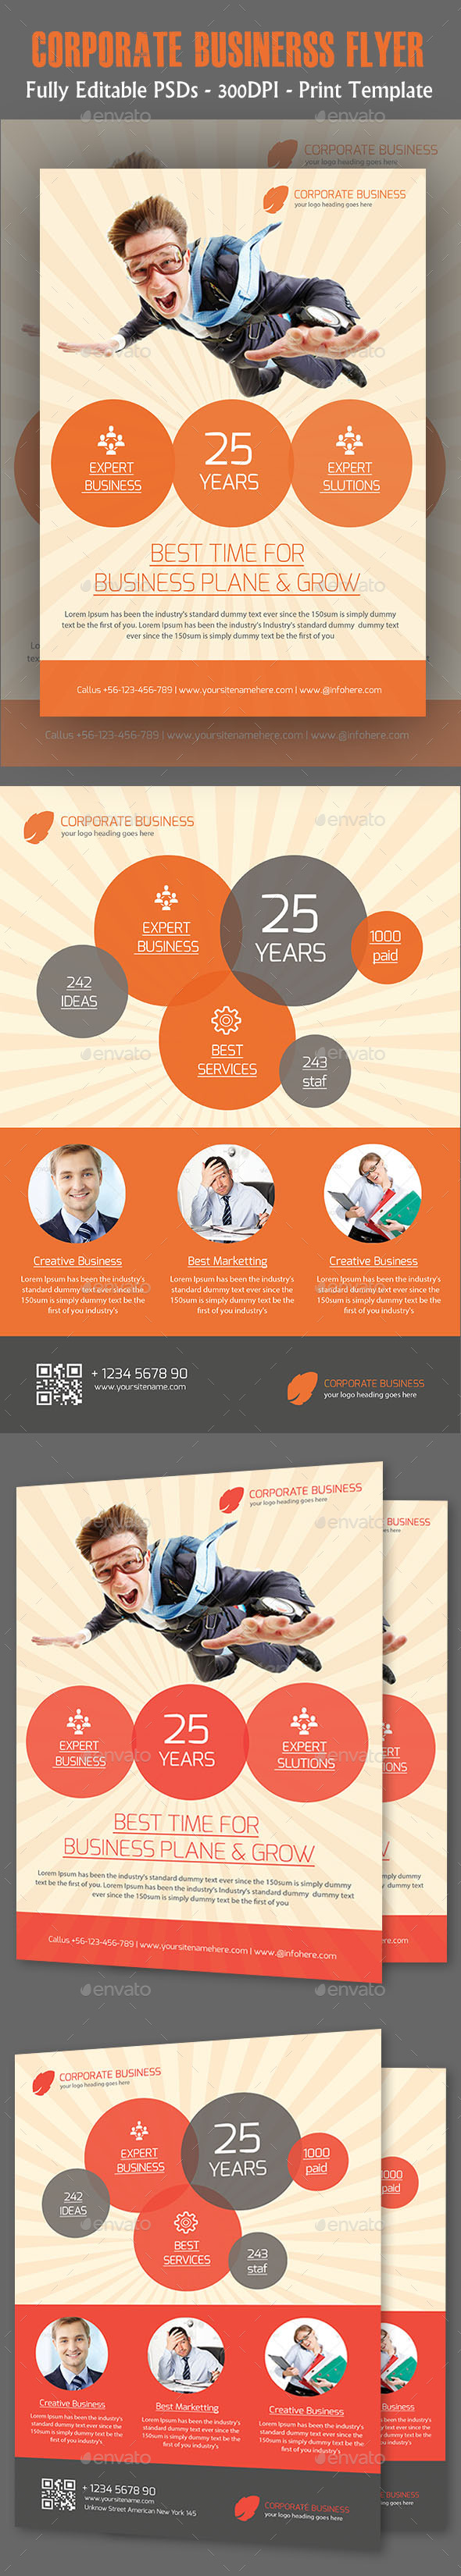 Corporate Business Flyer Templates - Flyers Print Templates